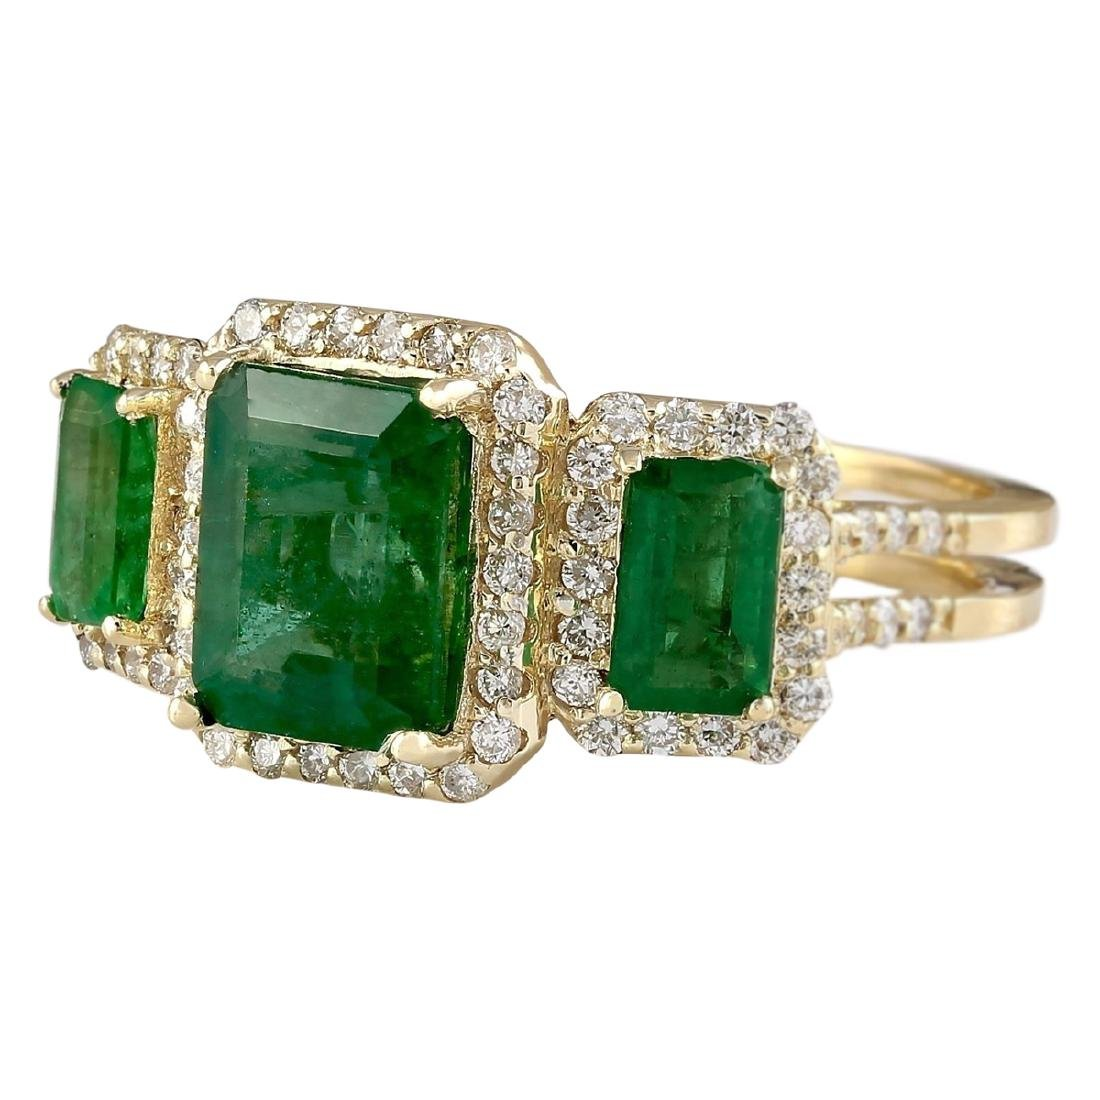 4.56 CTW Natural Emerald And Diamond Ring In 18K Yellow - 2